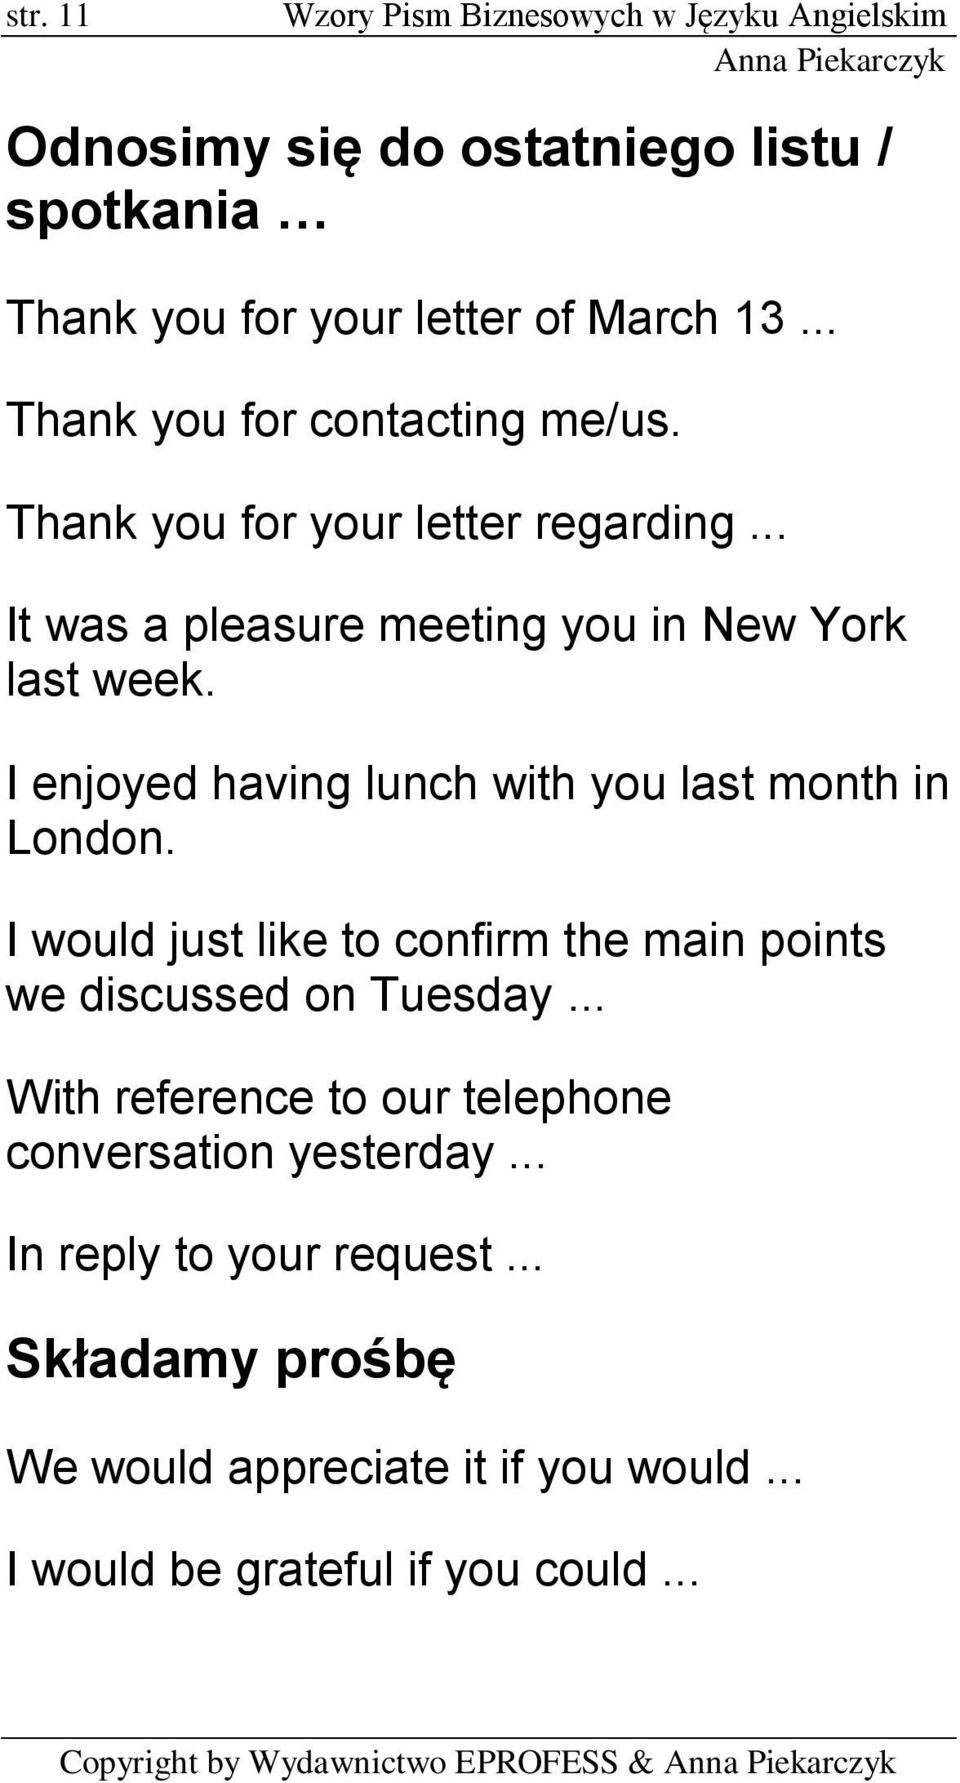 I enjoyed having lunch with you last month in London. I would just like to confirm the main points we discussed on Tuesday.